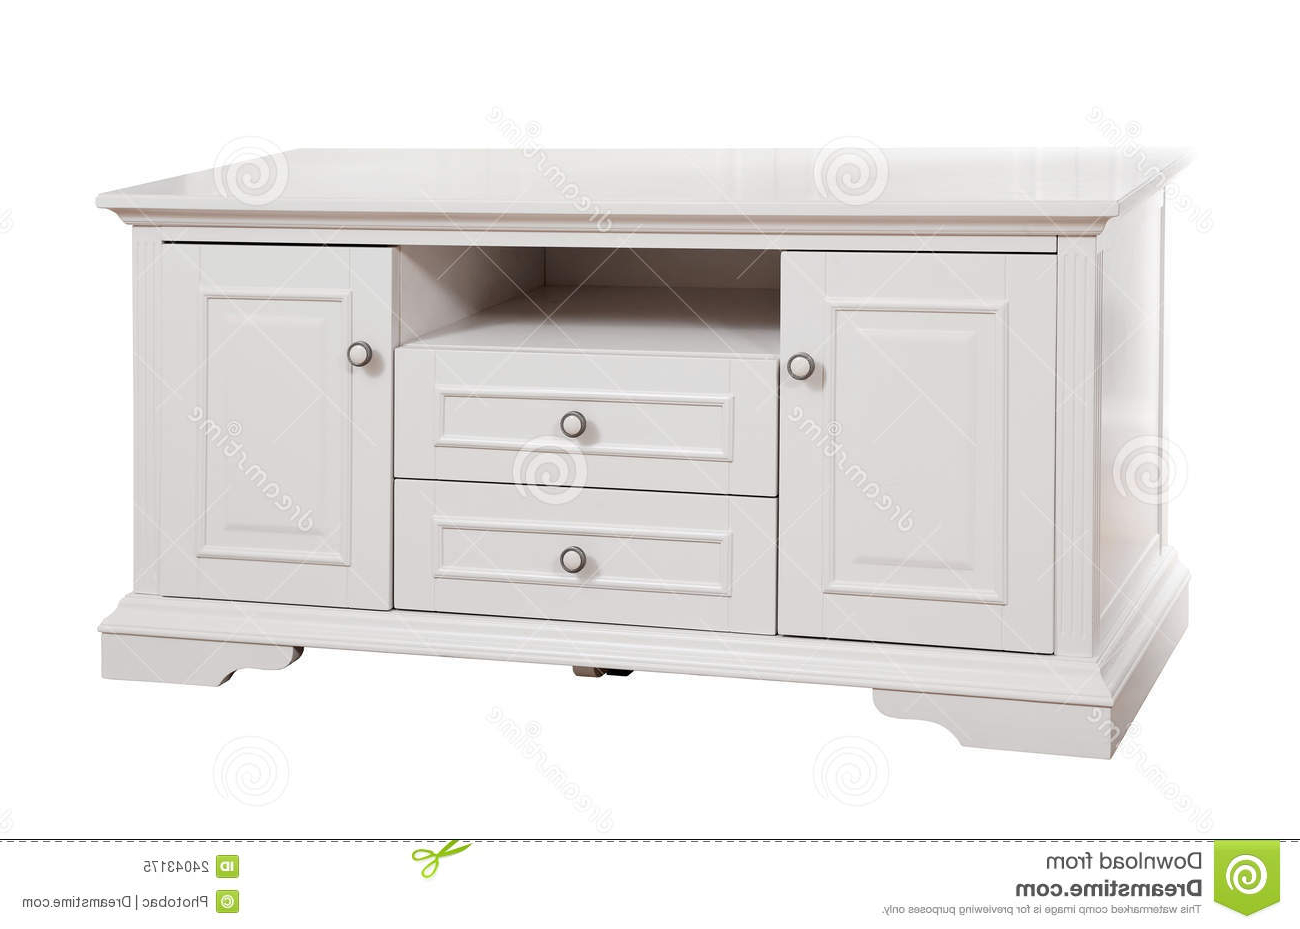 White Wood Tv Stands Throughout Well Known White Wooden (tv) Stand, With Clipping Path Stock Image – Image Of (View 5 of 20)